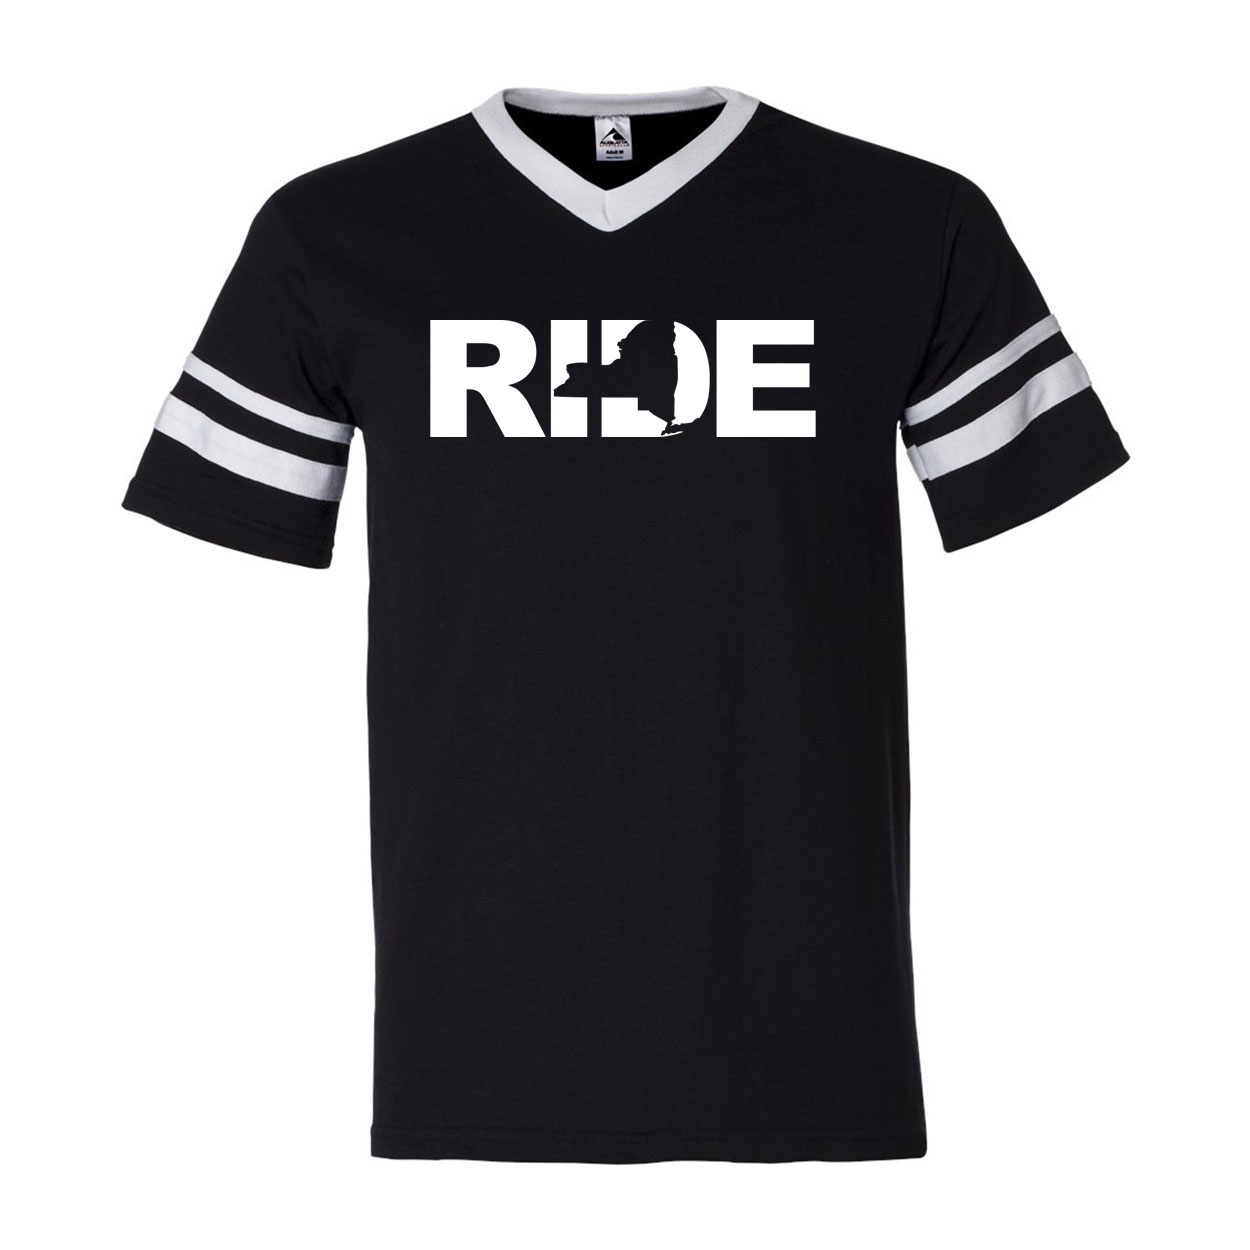 Ride New York Classic Premium Striped Jersey T-Shirt Black/White (White Logo)